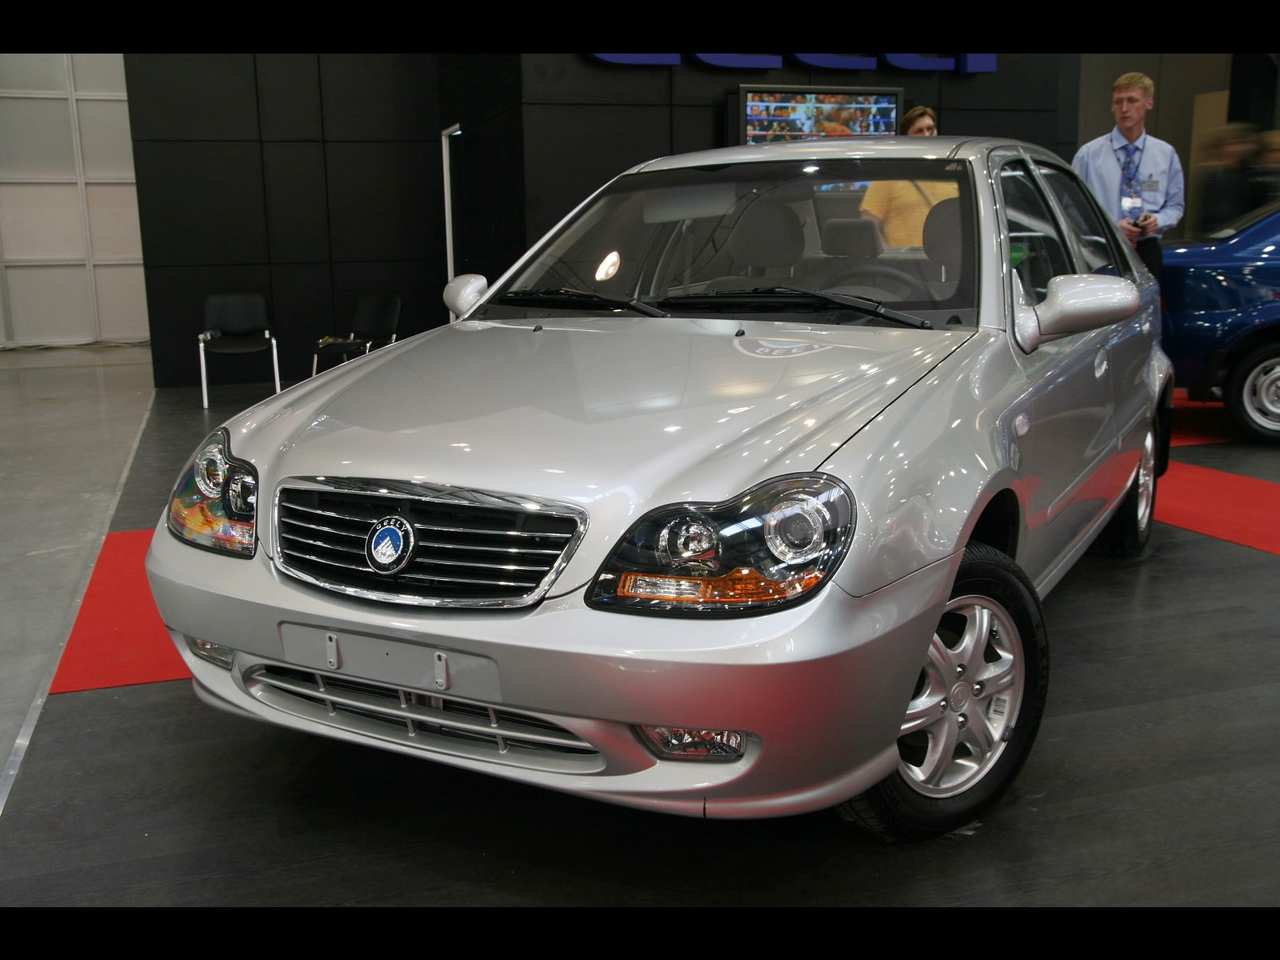 geely ck 2008 images #3